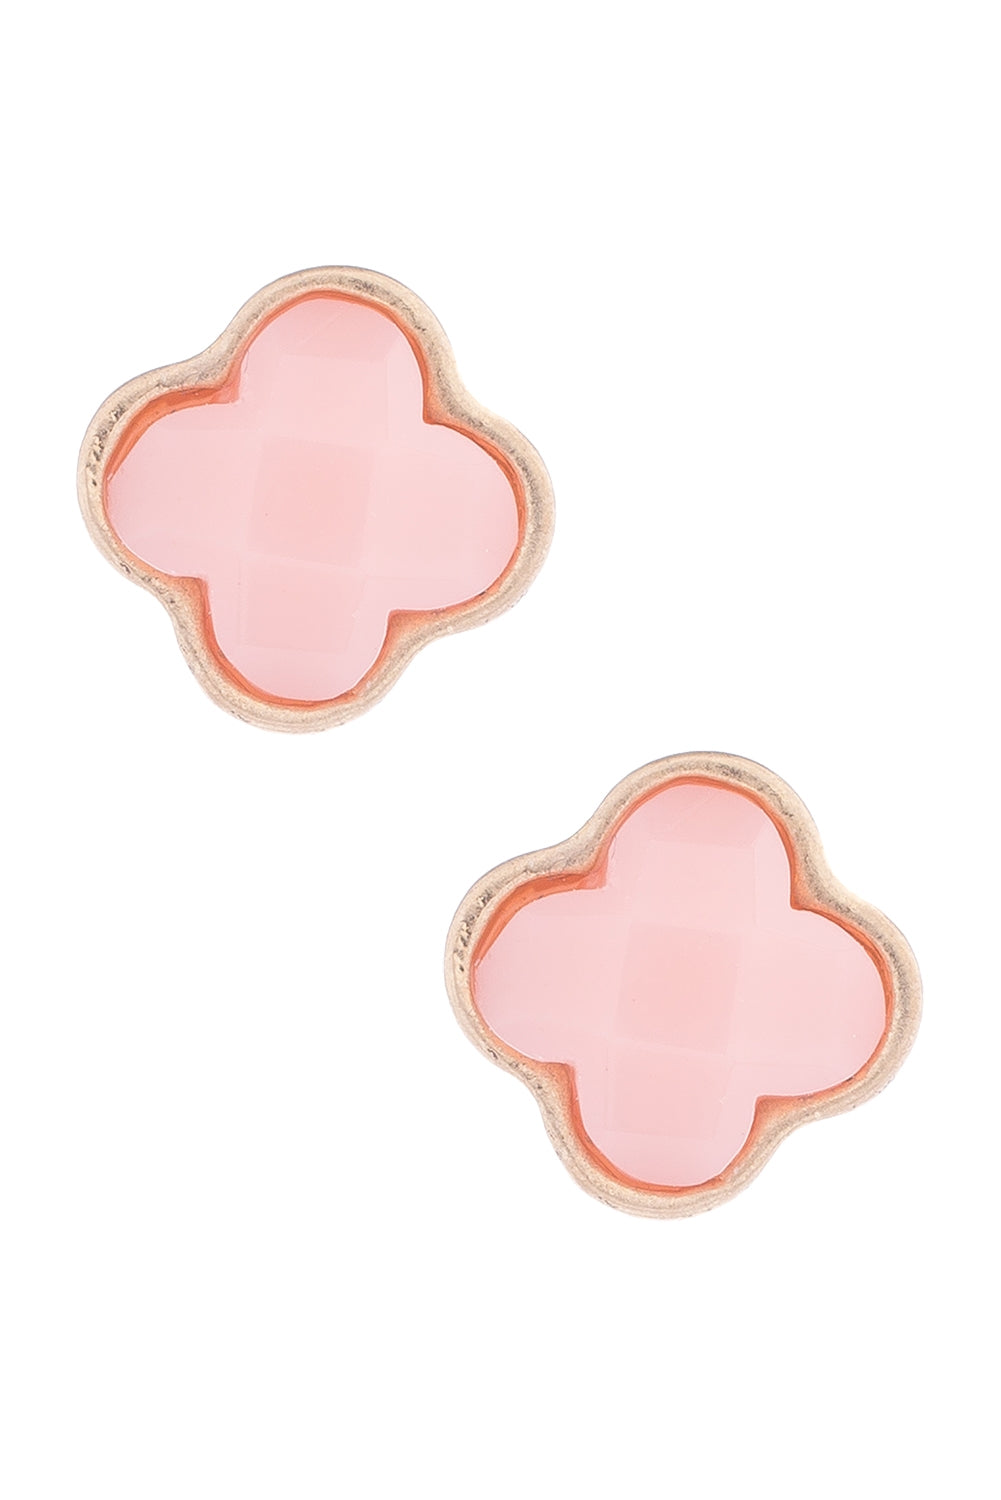 Type 1 Clever Clovers Earrings In Pink